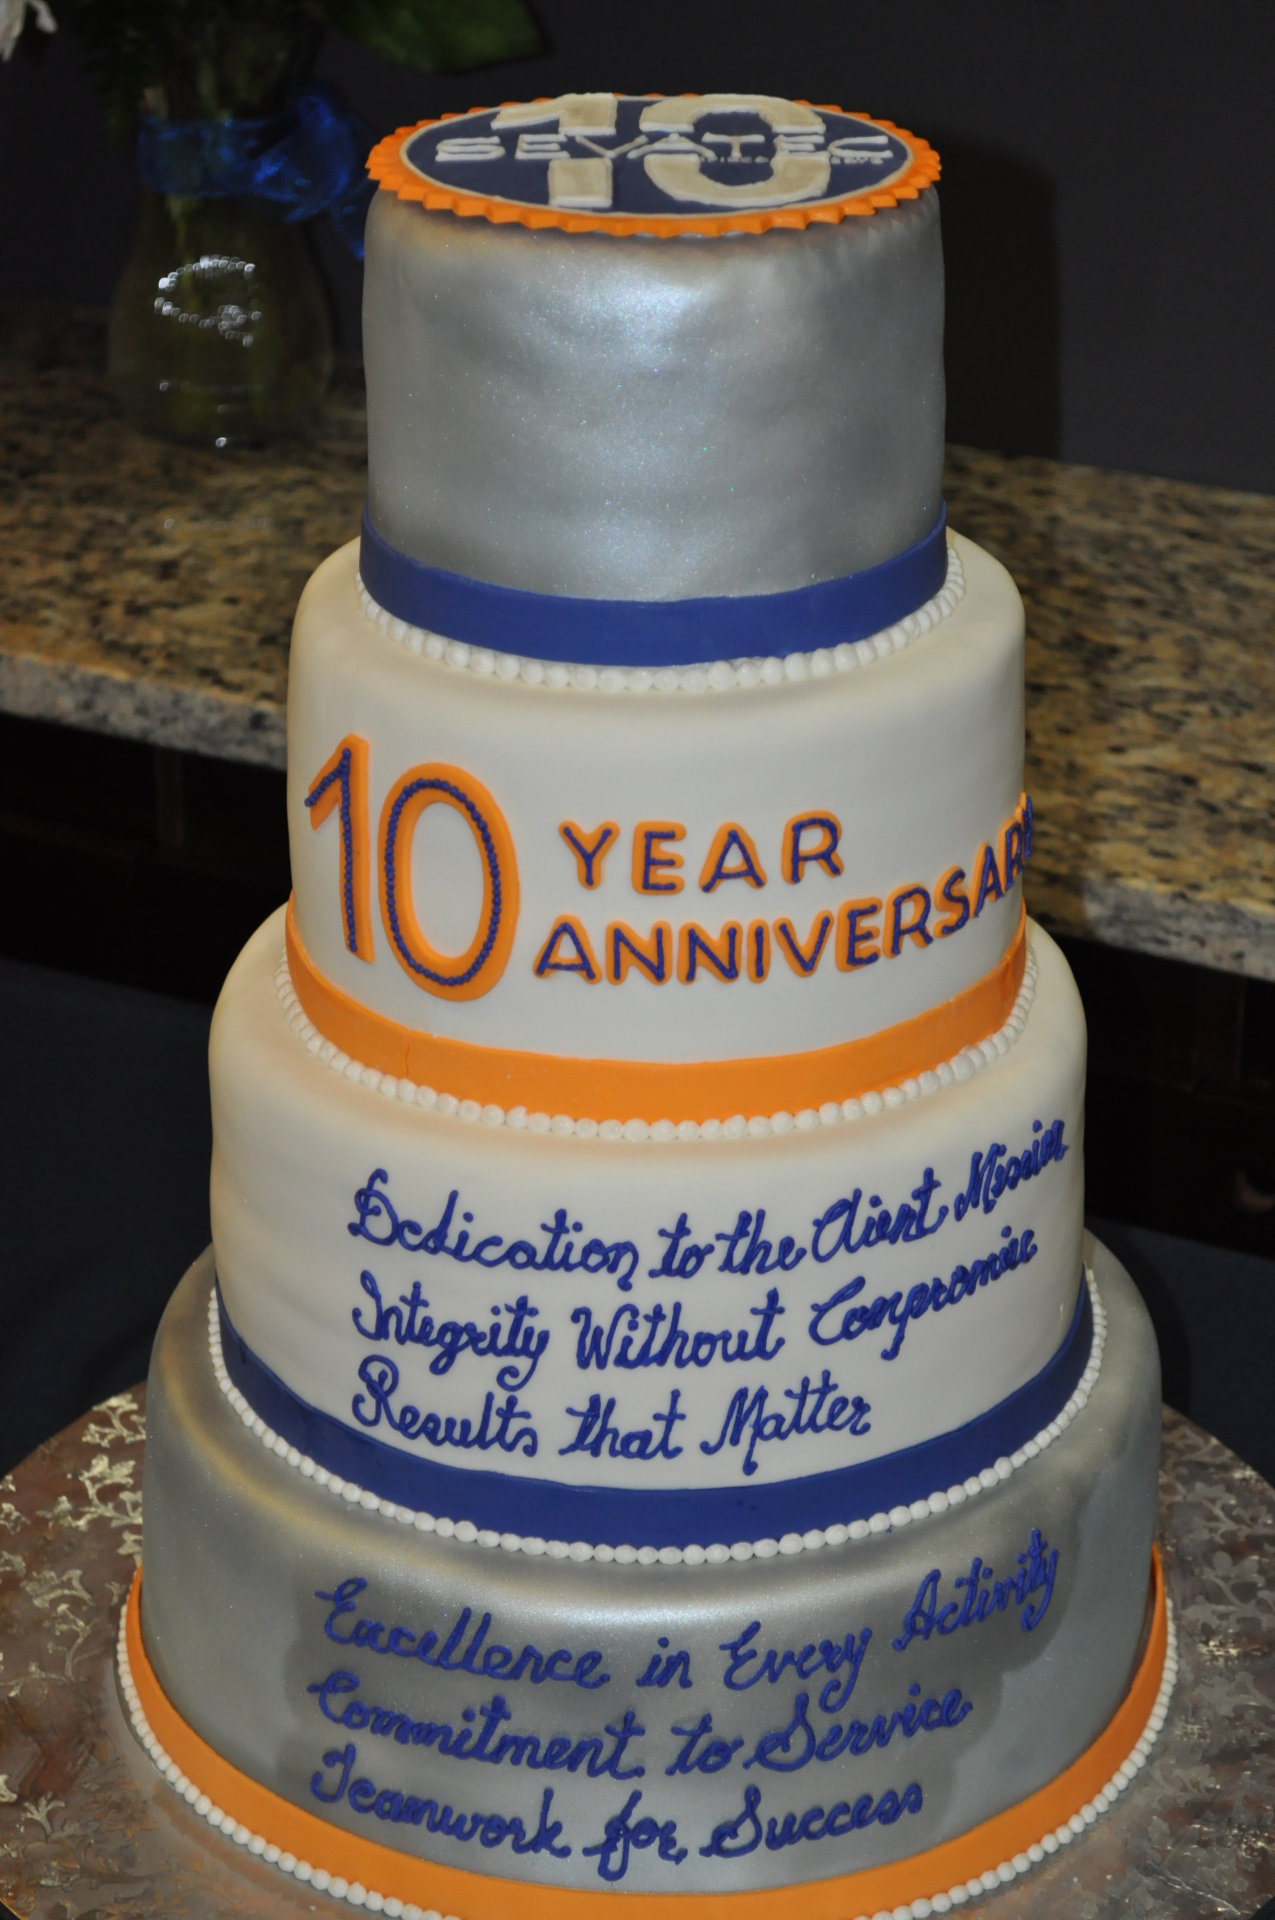 10th anniversary cake-Corporate event cake